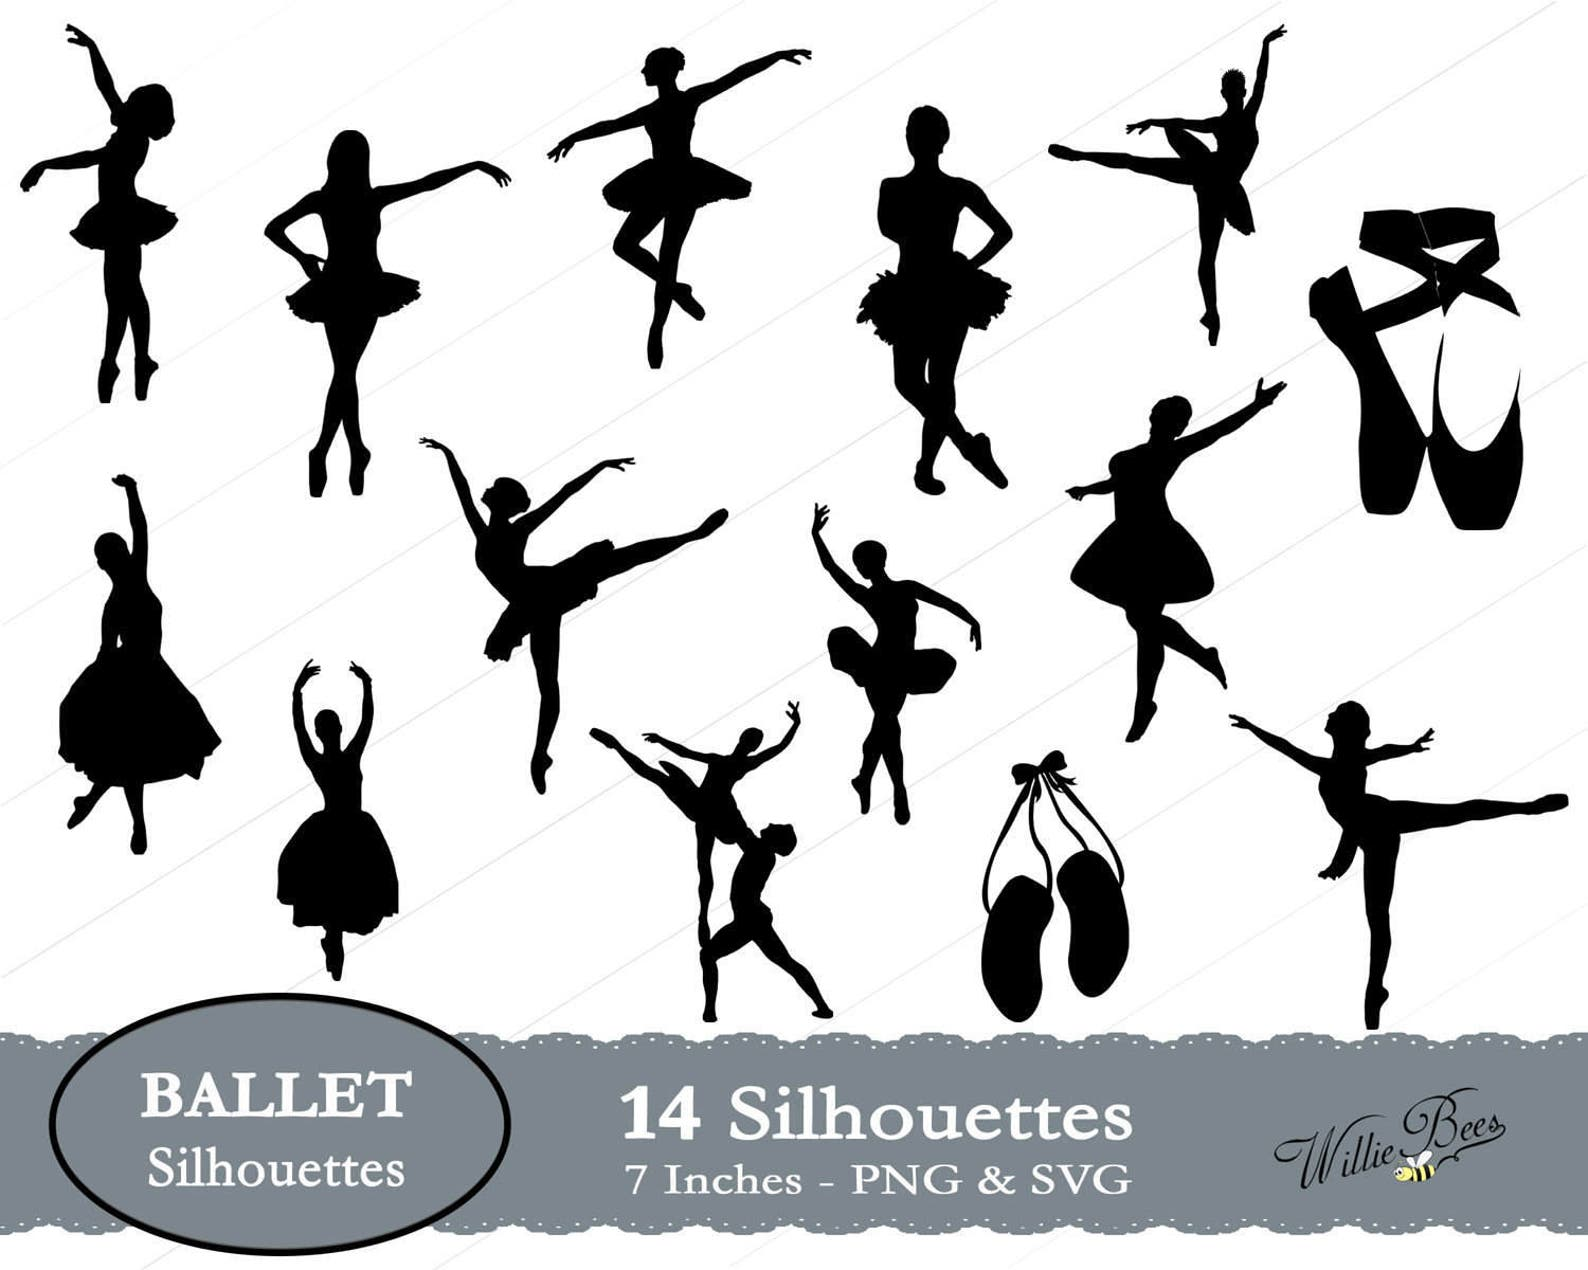 ballet silhouette clip art, ballet dancers svg, danseur clipart, danseuse performing art, ballerina dancers, ballet shoes, insta